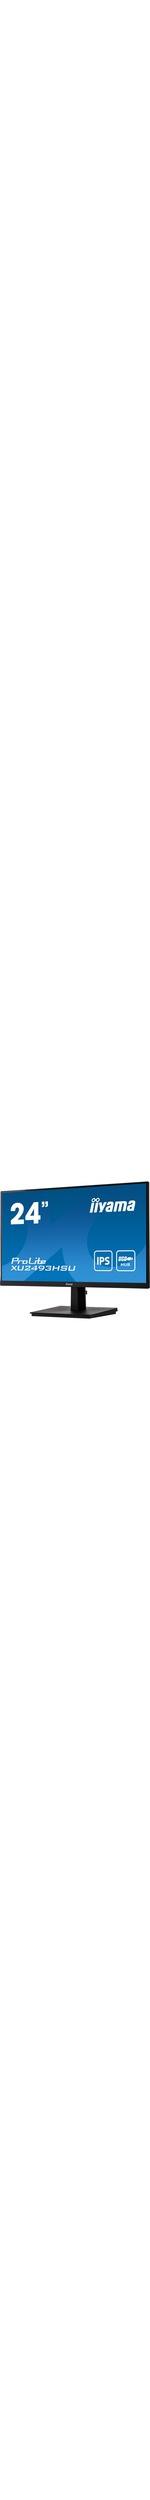 iiyama ProLite XU2493HSU-B1 23.8And#34; Full HD LED LCD Monitor - 16:9 - Matte Black